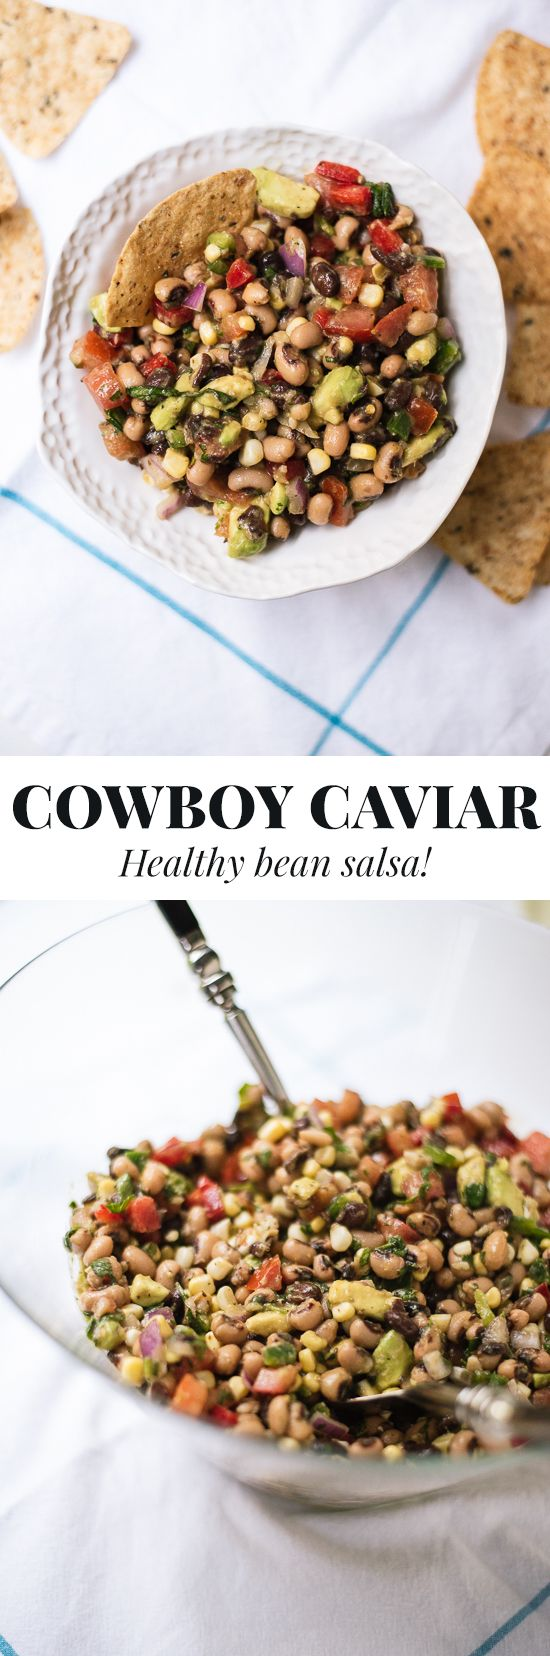 Healthy Cowboy Caviar Recipe - Cookie and Kate